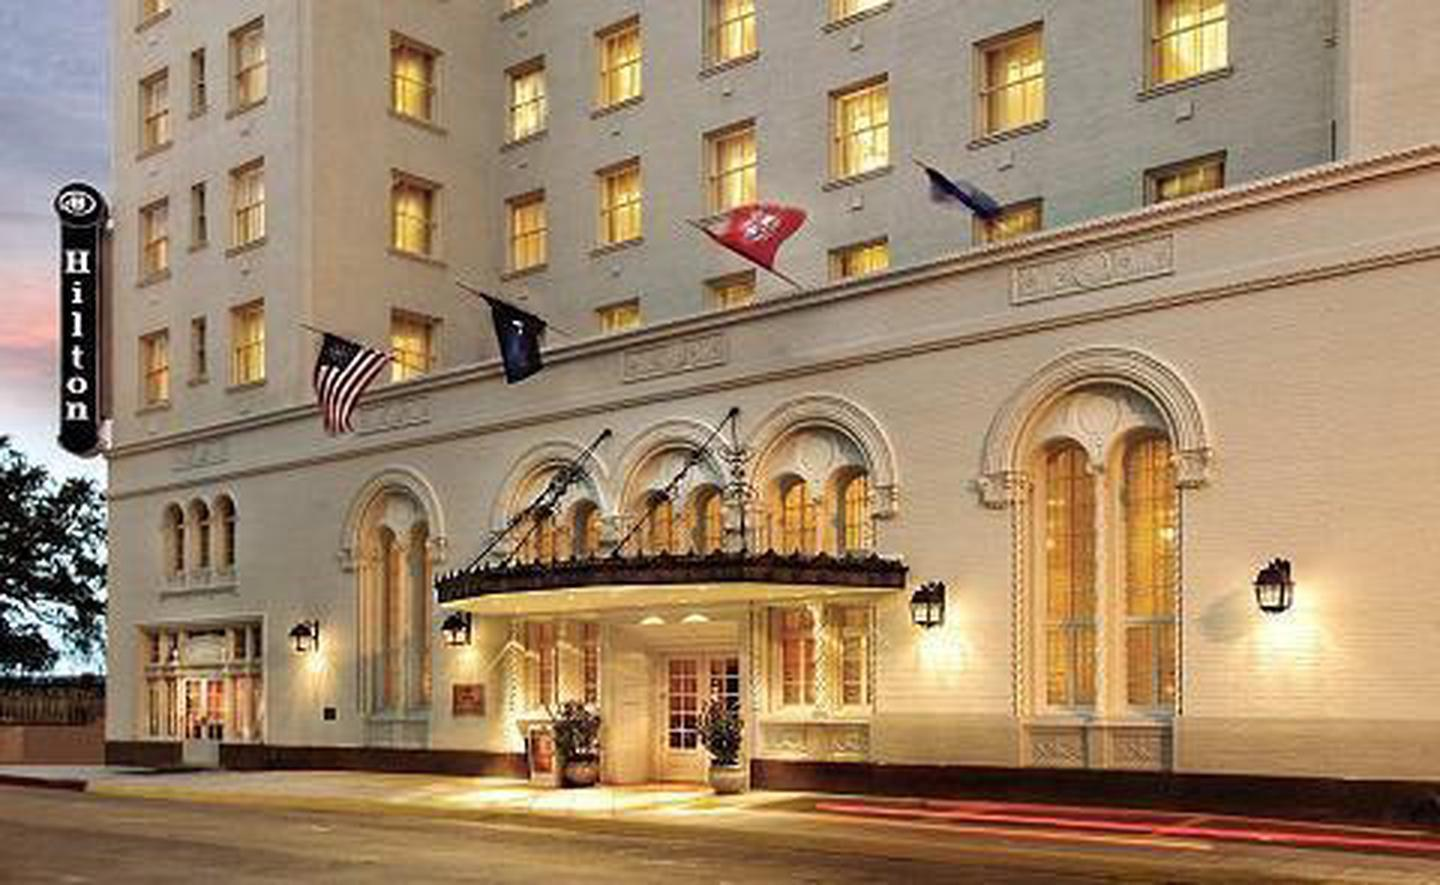 Surrounded by Baton RougeWith convenient shuttles to area casinos and airports, as well as walking distance to the Shaw Center and the River Center Convention Center, the hotel's location is perfect for everyone.